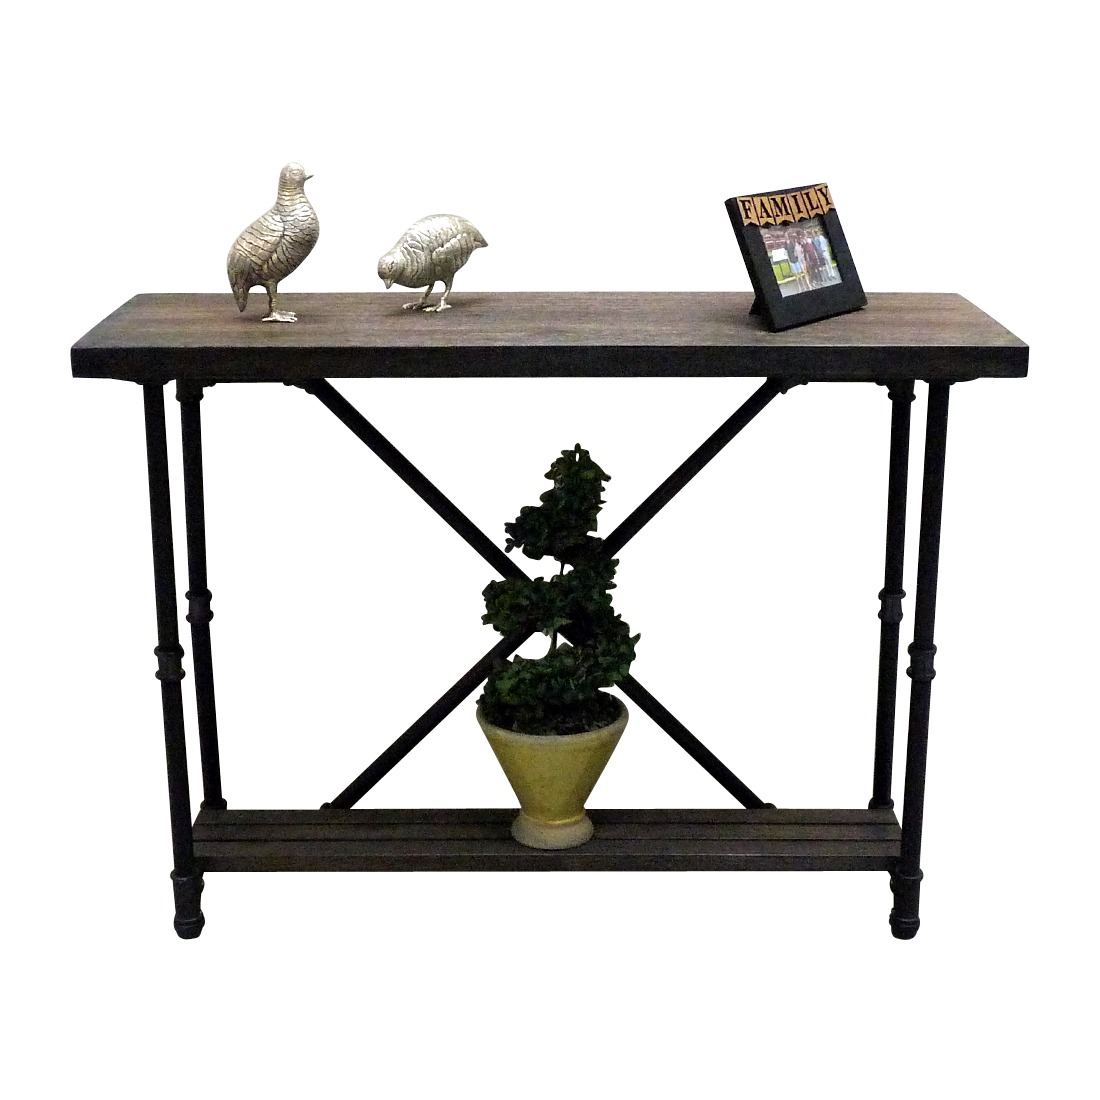 Houston Industrial Chic Console Table SFX1 BLBLBL 7